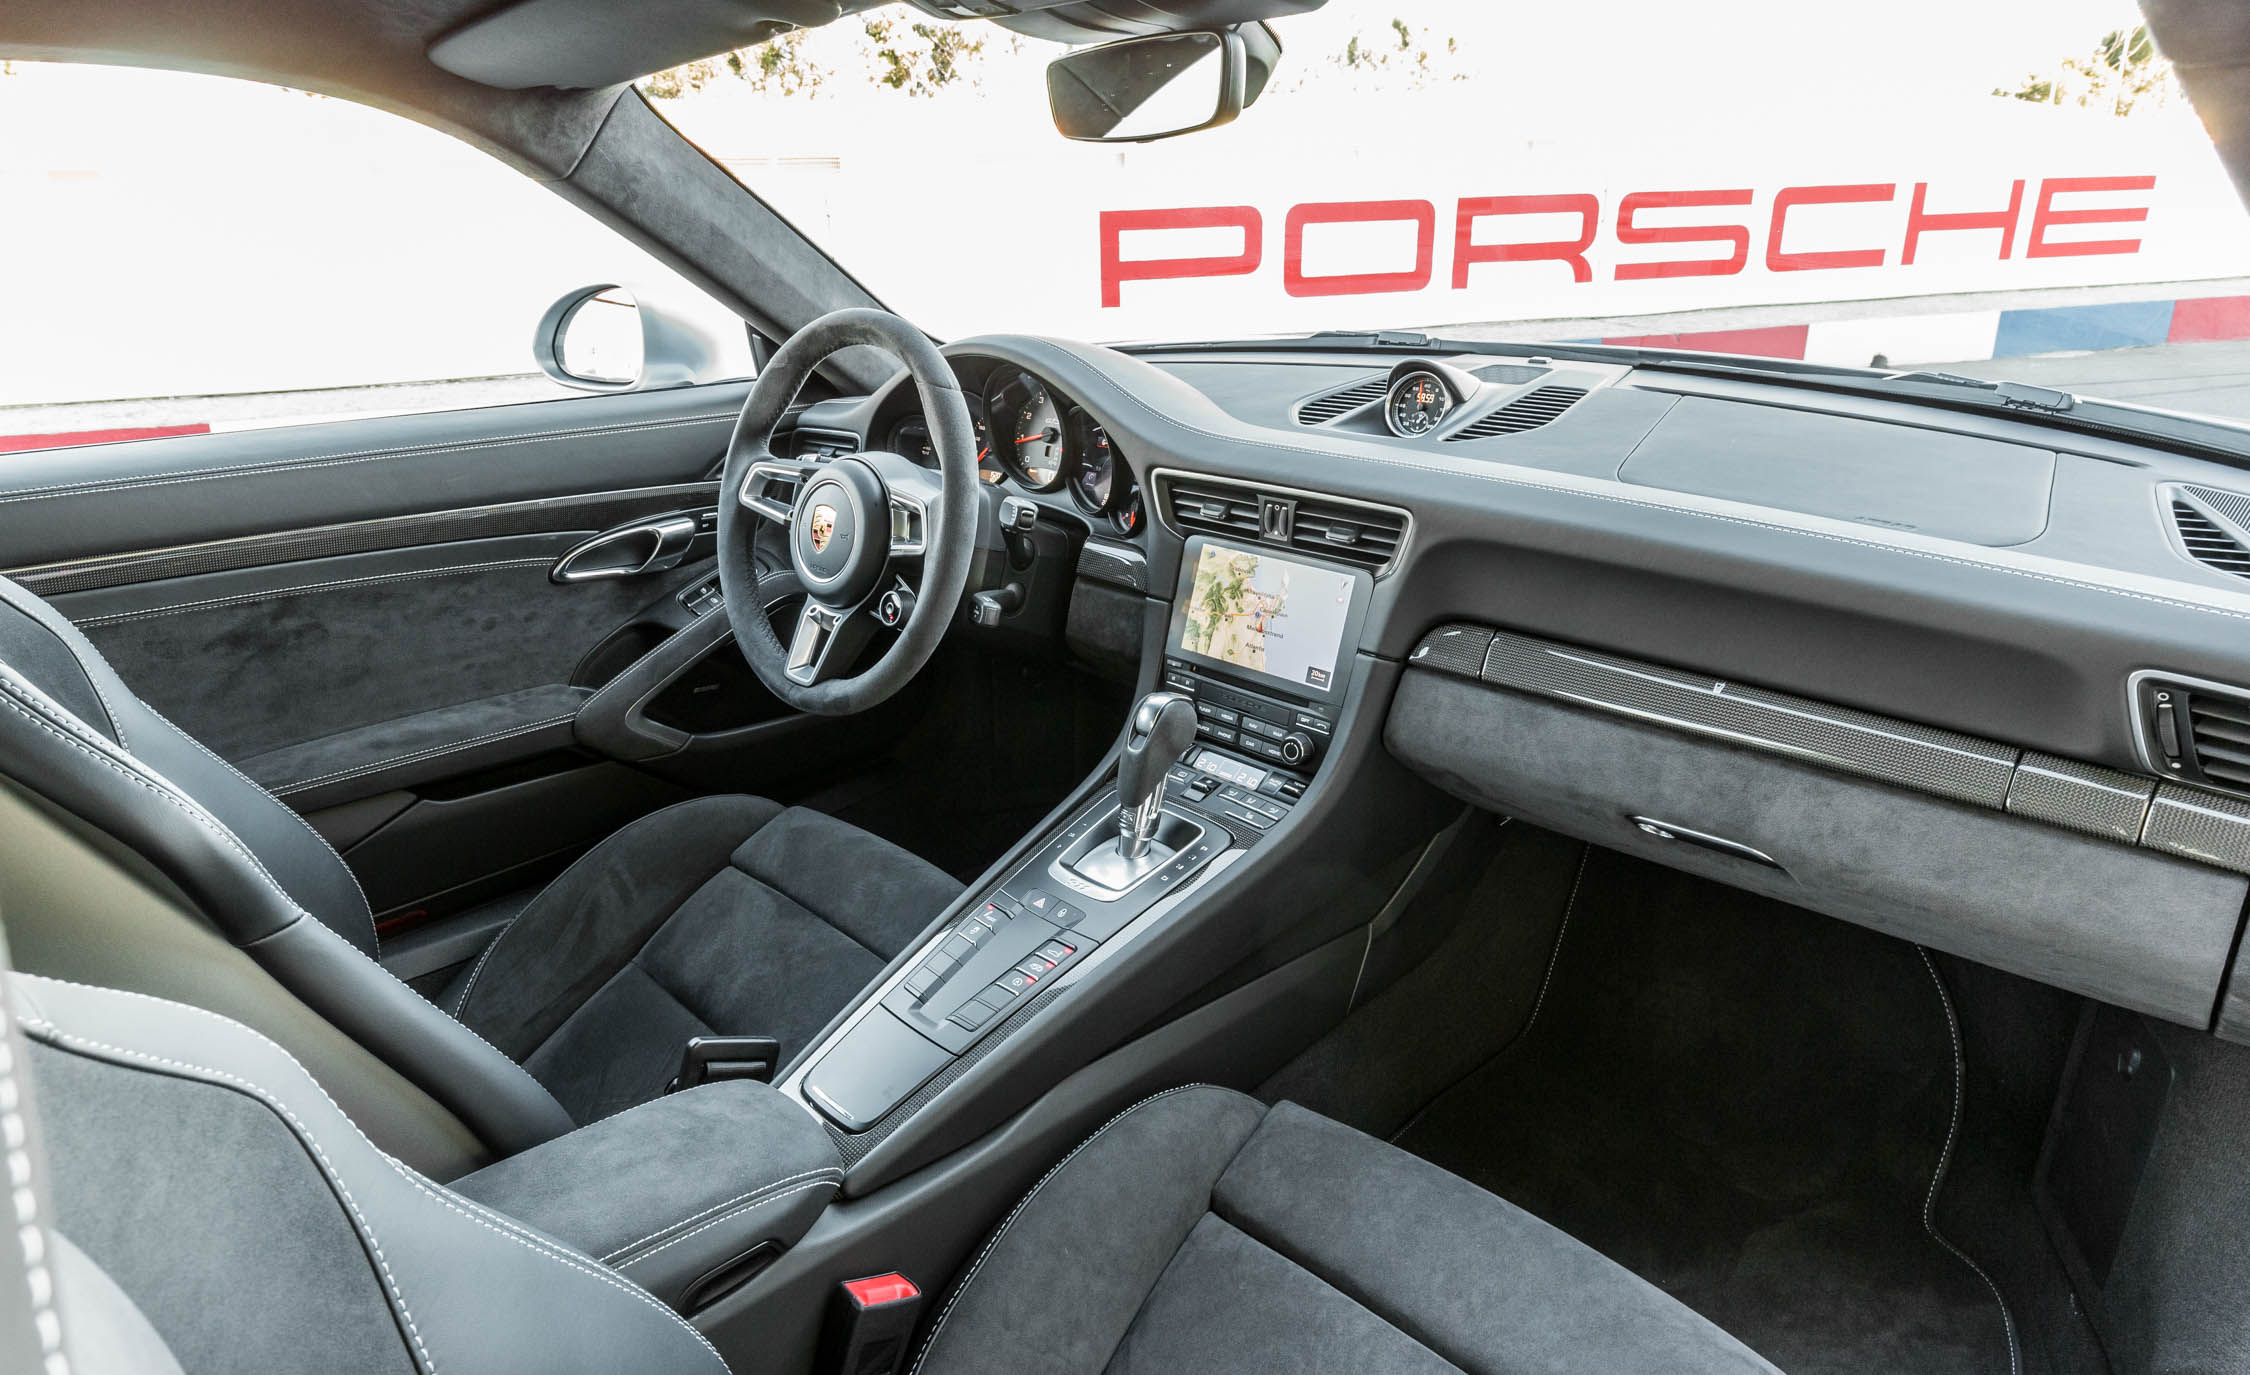 2017 Porsche 911 Carrera GTS Coupe Interior Dashboard (Photo 49 of 97)